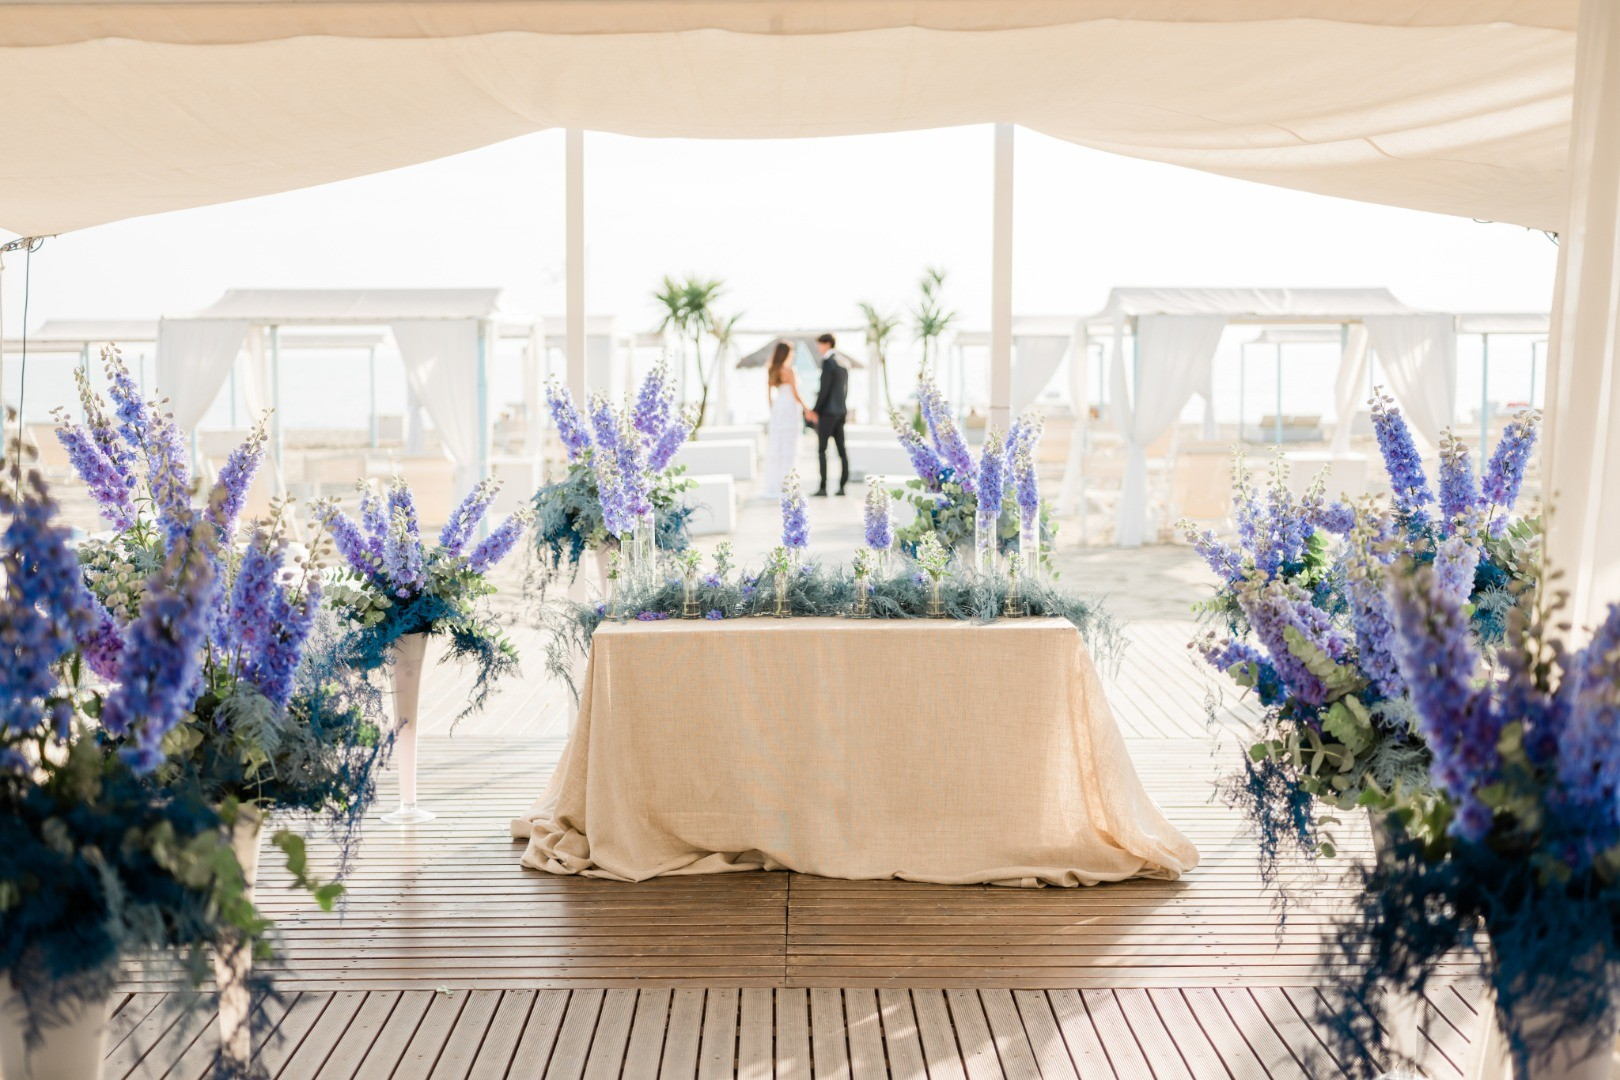 Wedding on the Beach in Tuscany